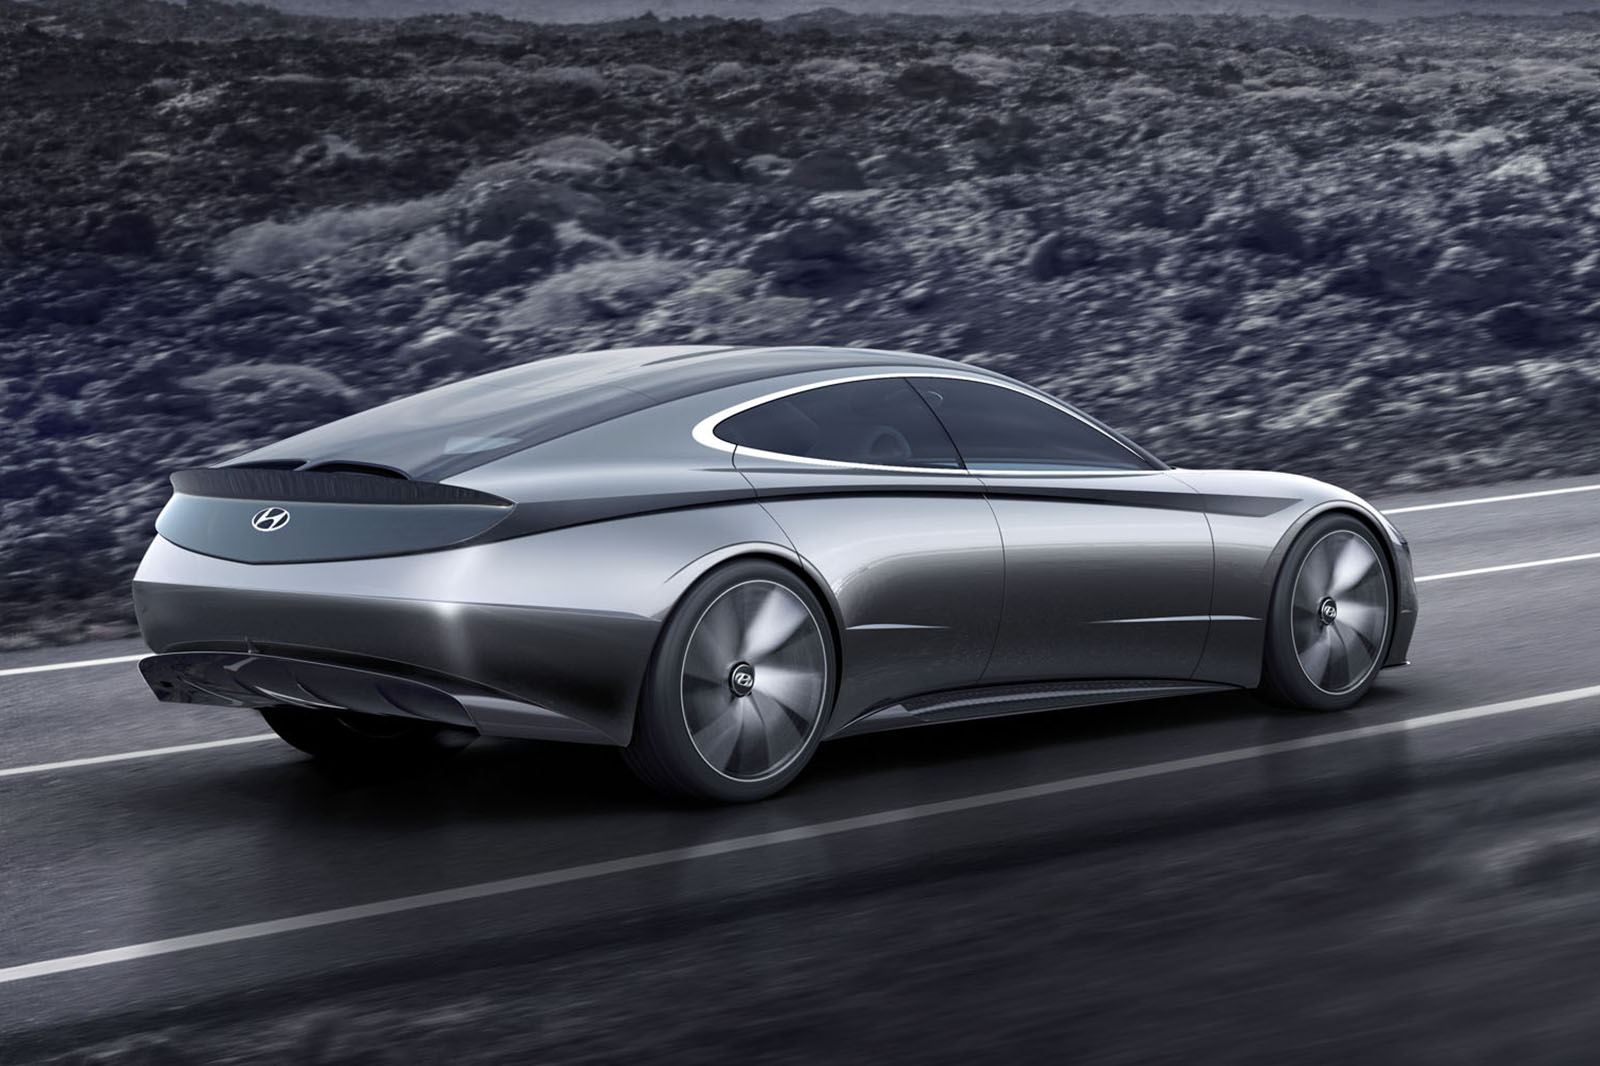 Hyundai le fil rouge concept revealed as blueprint for new design our goal is to build hyundai into a beloved brand by creating vehicles with heightened emotional value said sang yup lee head of styling malvernweather Image collections